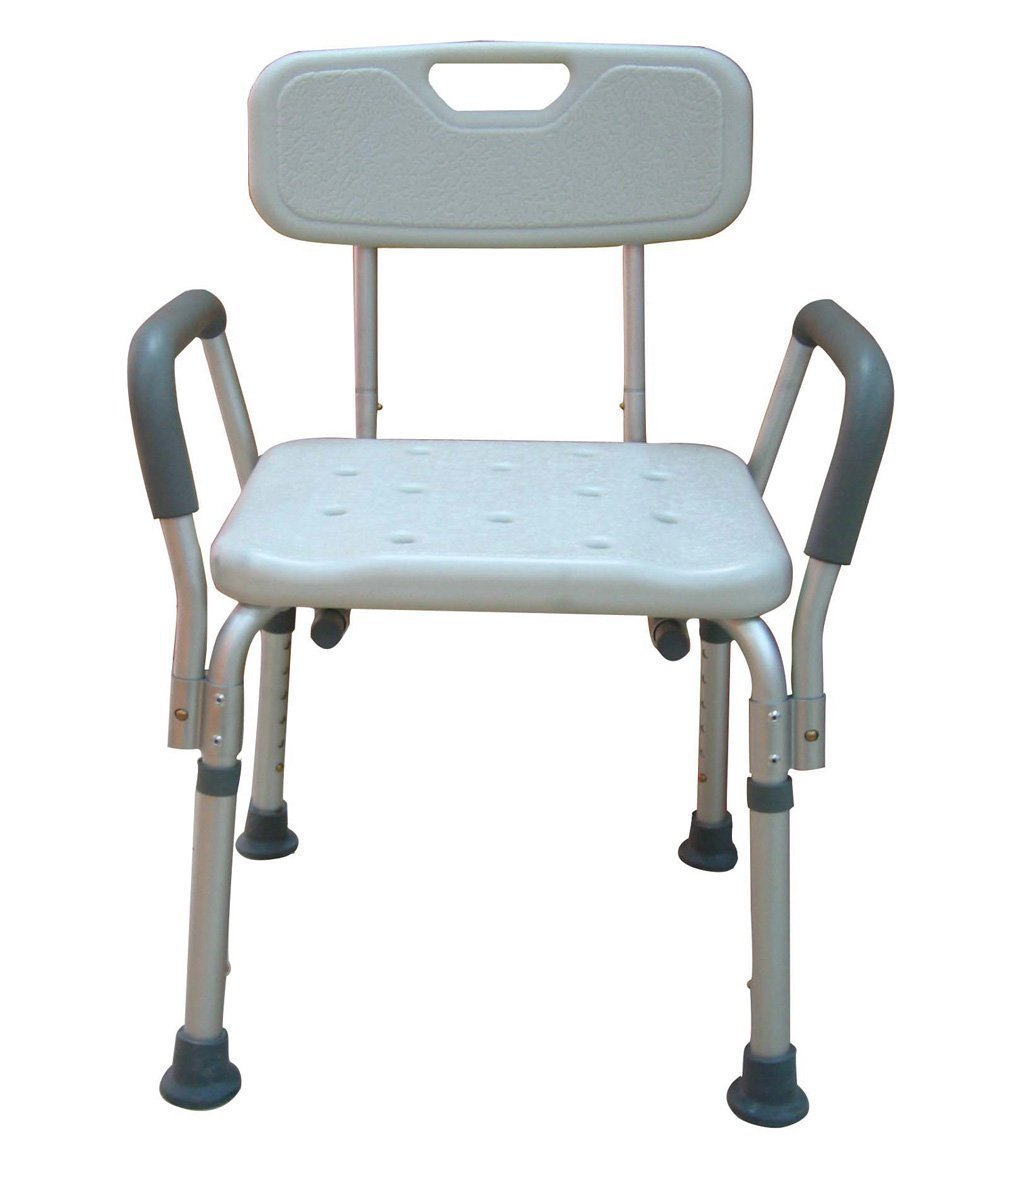 spa bath tub bathtub shower chair seat bench white bath bench with arms - Shower Benches